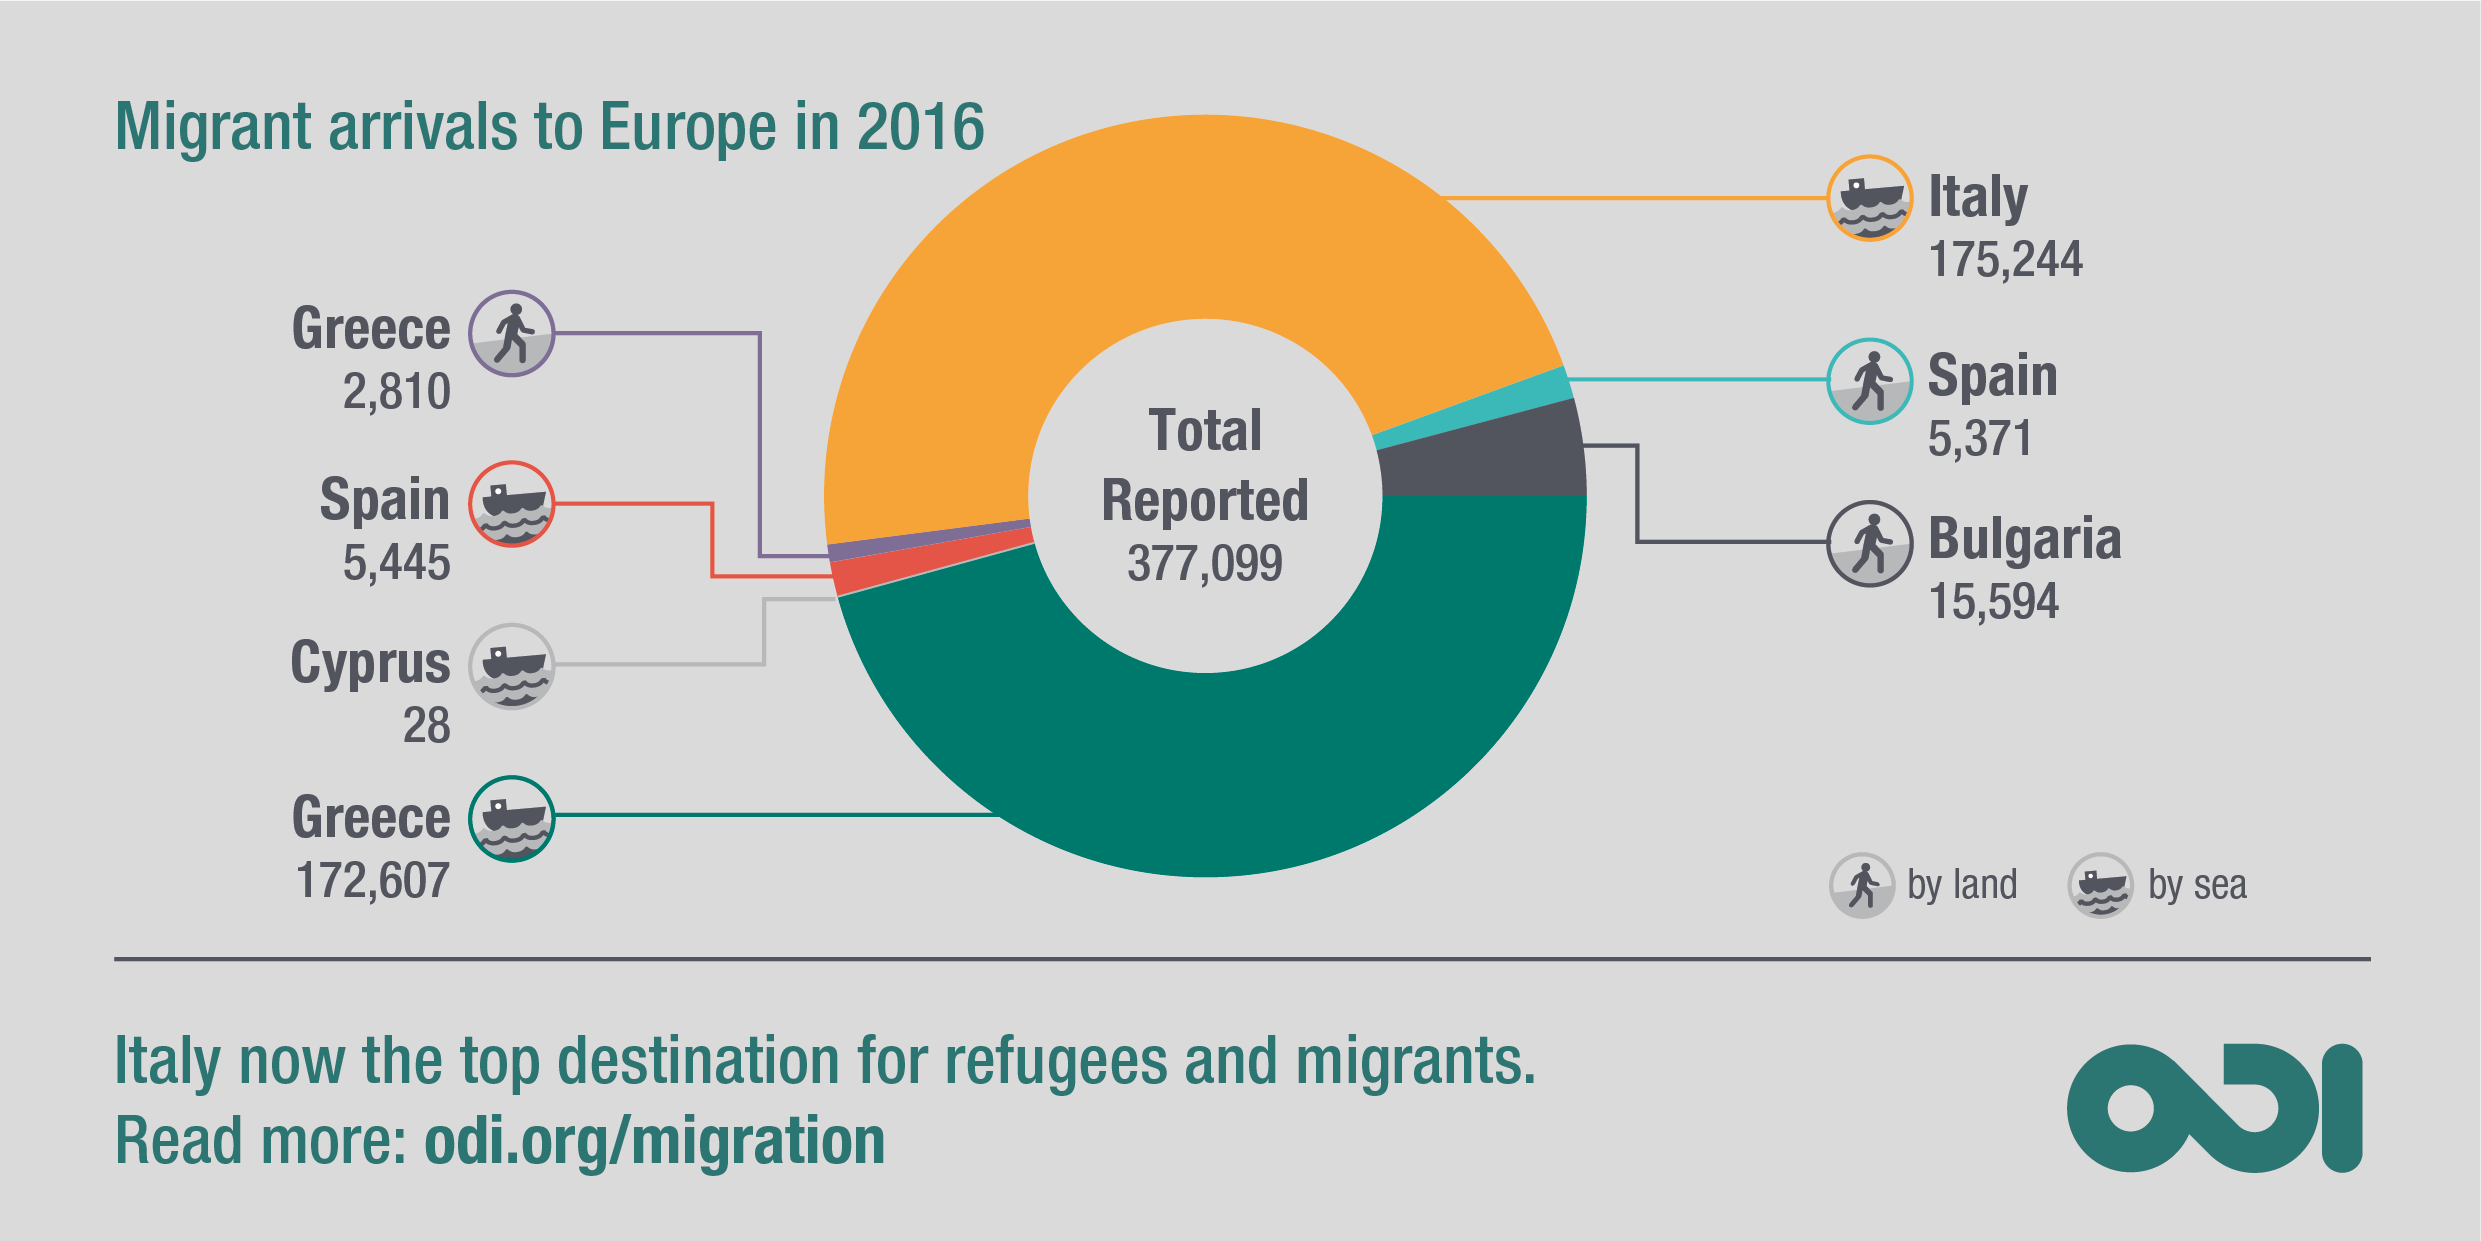 Italy now the top destination for refugees and migrants